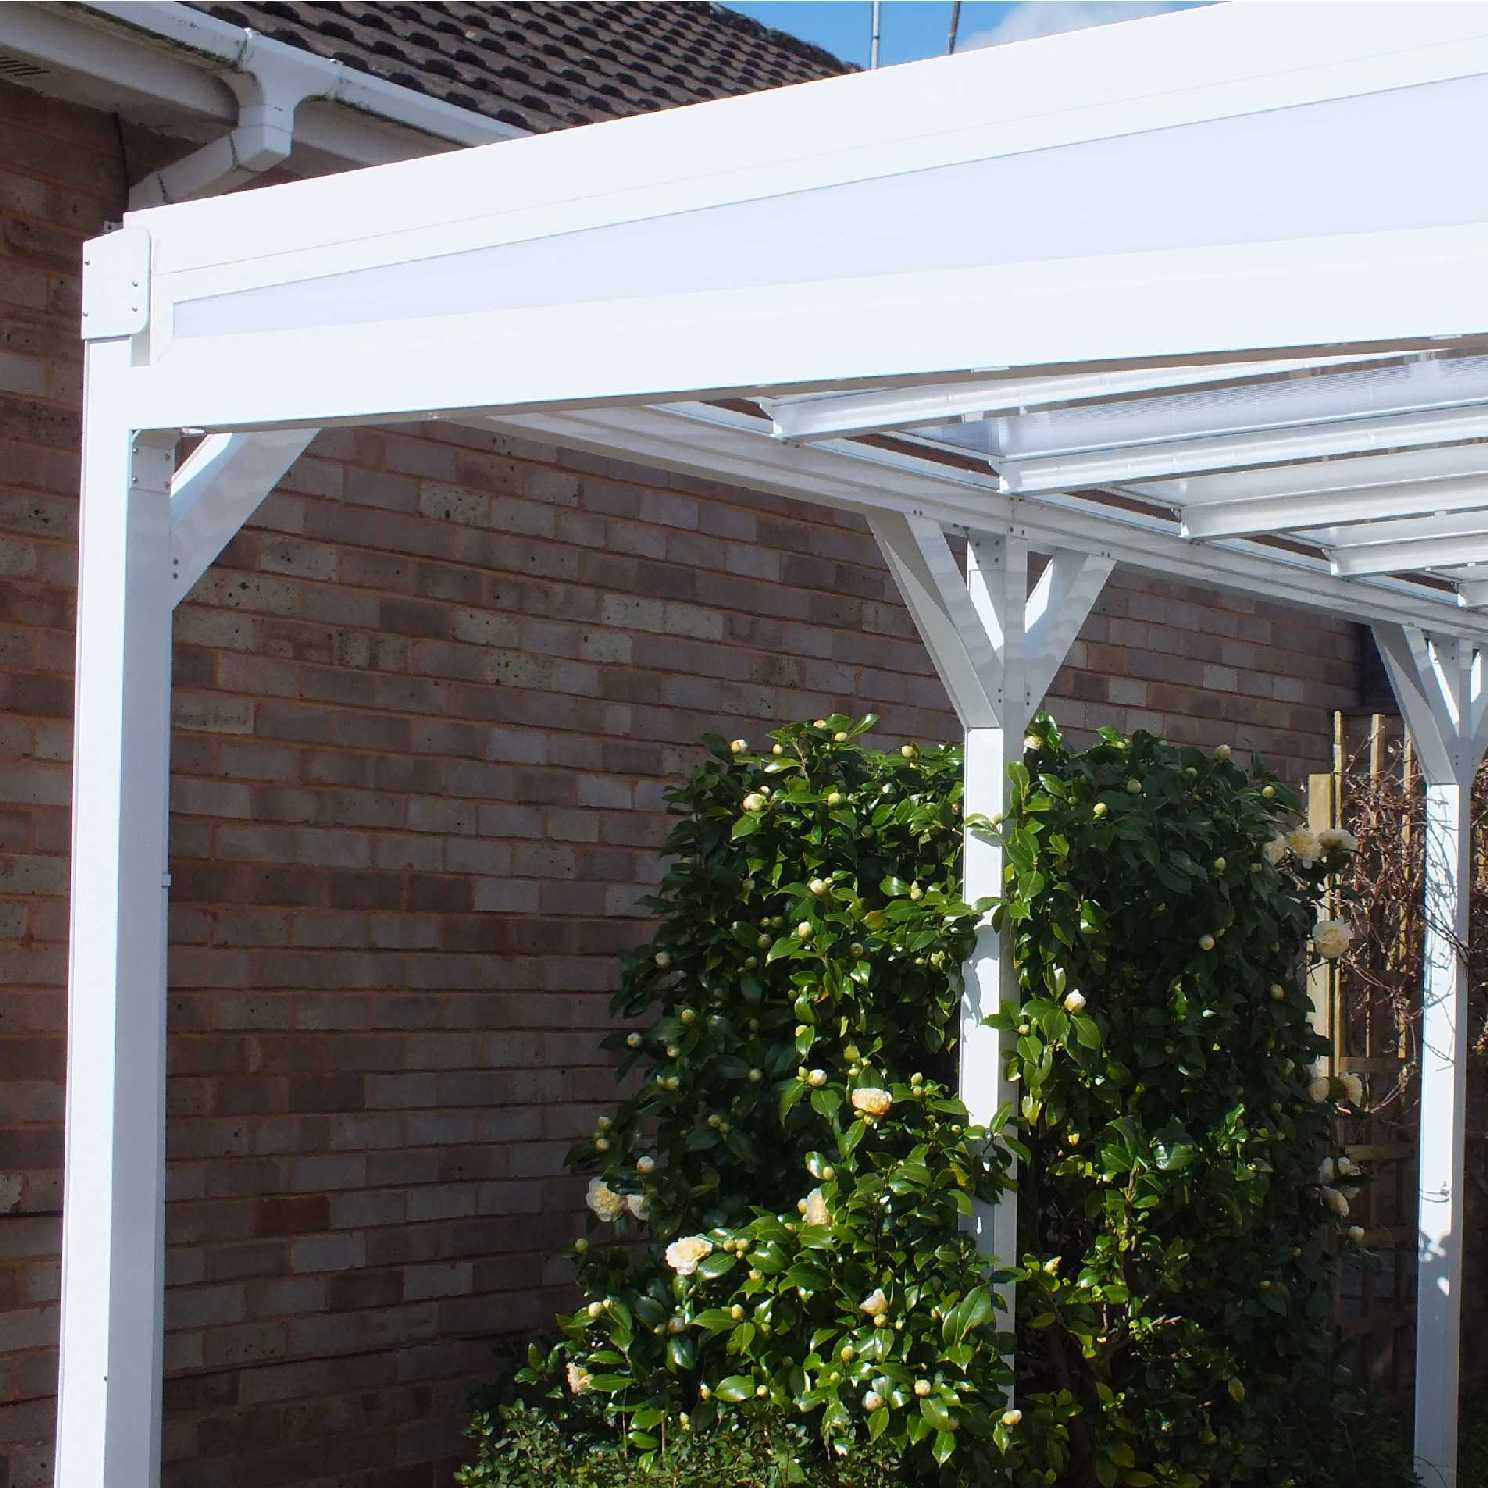 Omega Smart Lean-To Canopy with 16mm Polycarbonate Glazing - 6.3m (W) x 2.5m (P), (4) Supporting Posts from Omega Build